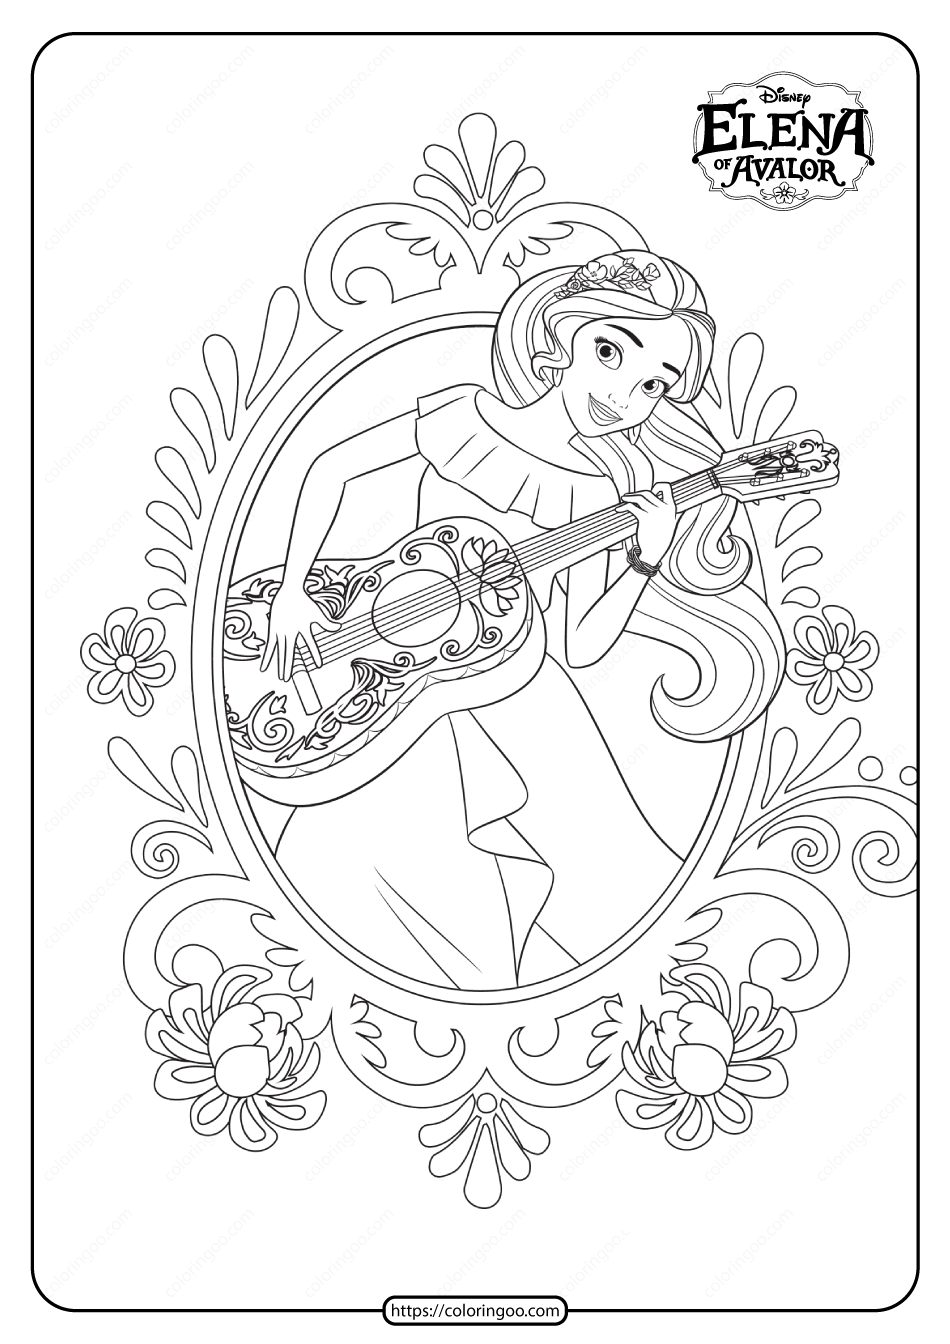 Princess Elena Of Avalor Pdf Coloring Book